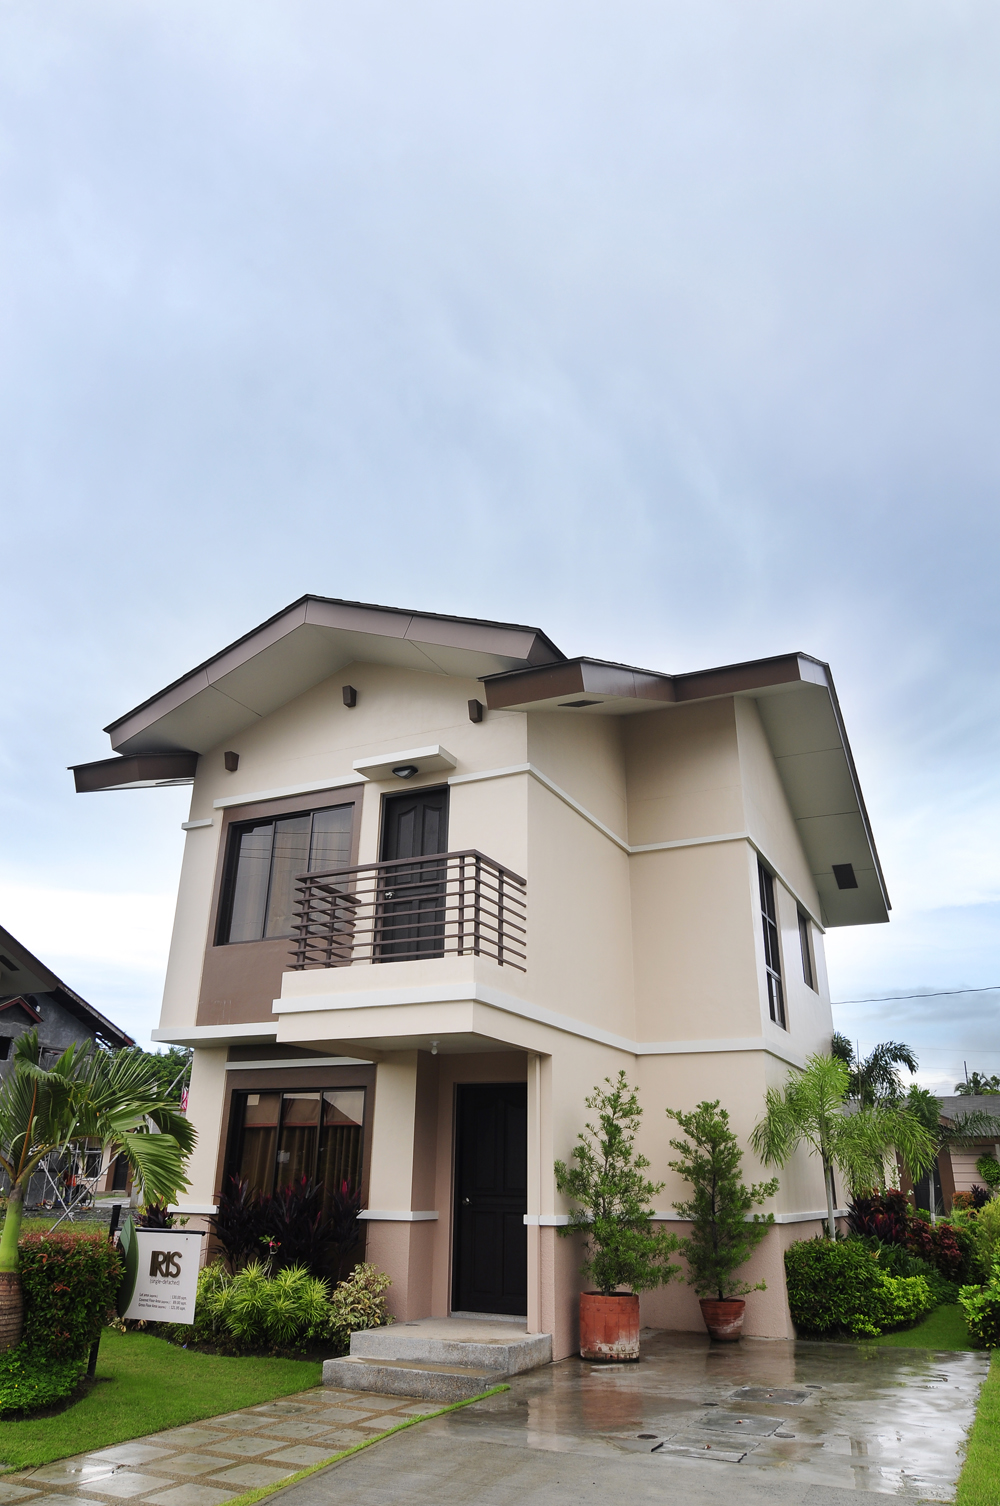 FOR SALE: Apartment / Condo / Townhouse Laguna > Cabuyao 7